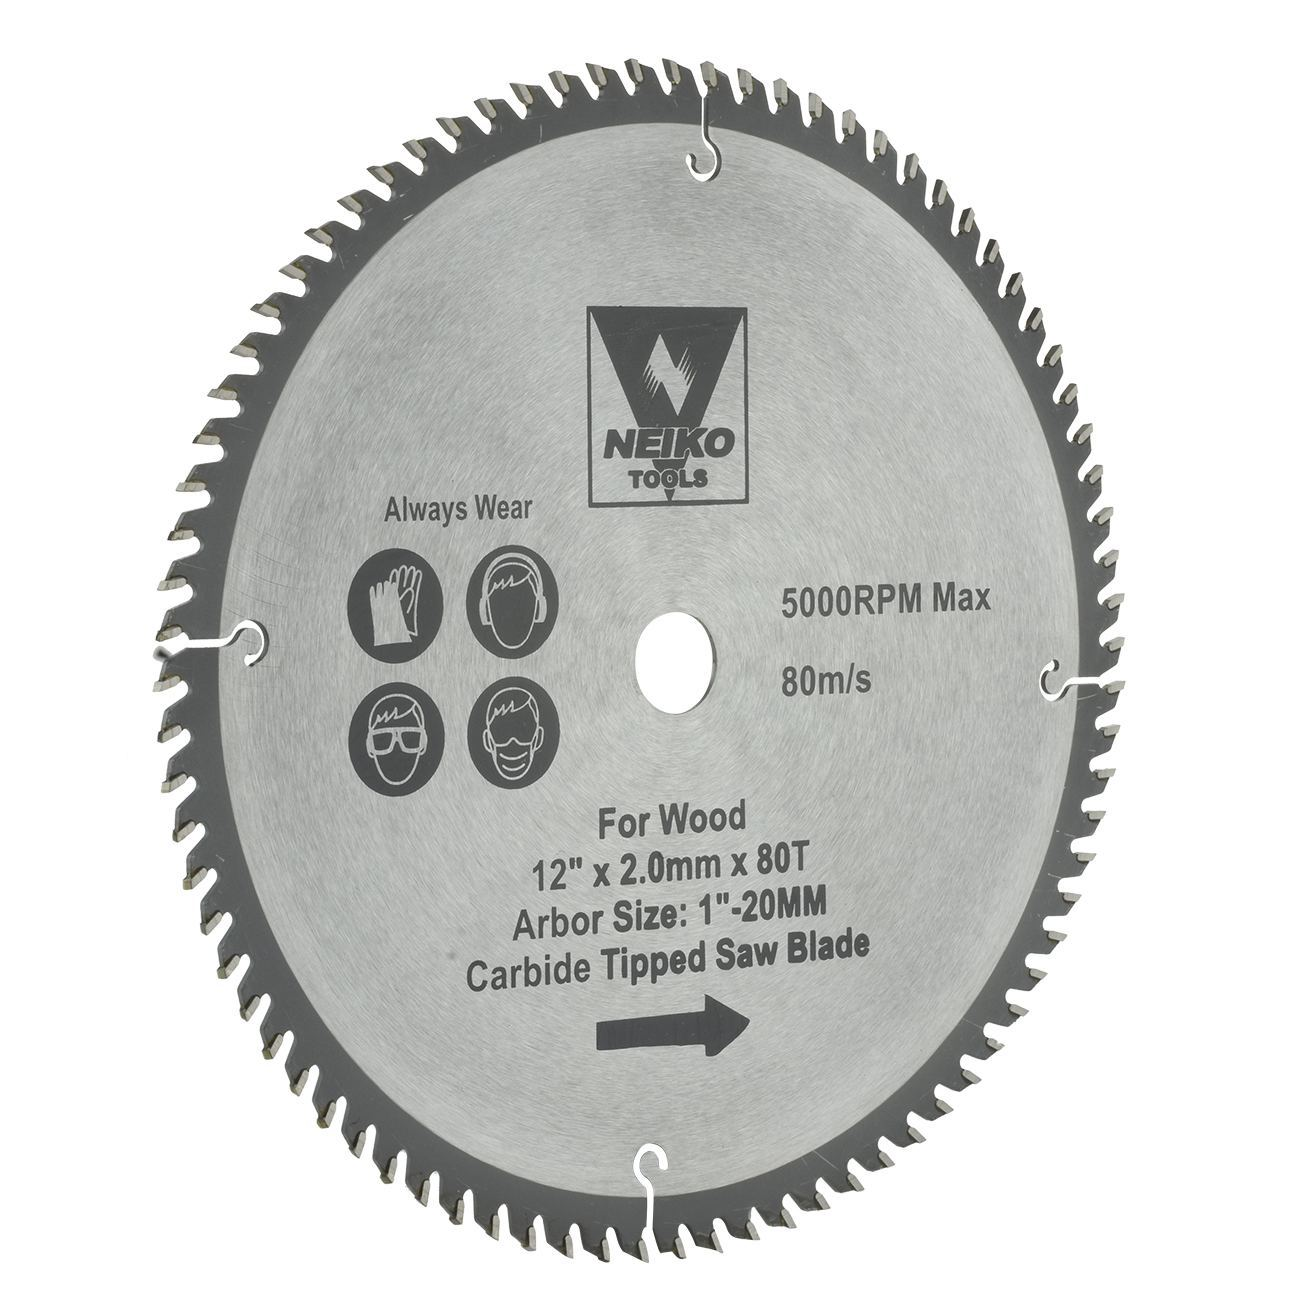 Table Saw Blades For Wood Carbide Tipped 12 Inch X 80 Teeth Ebay